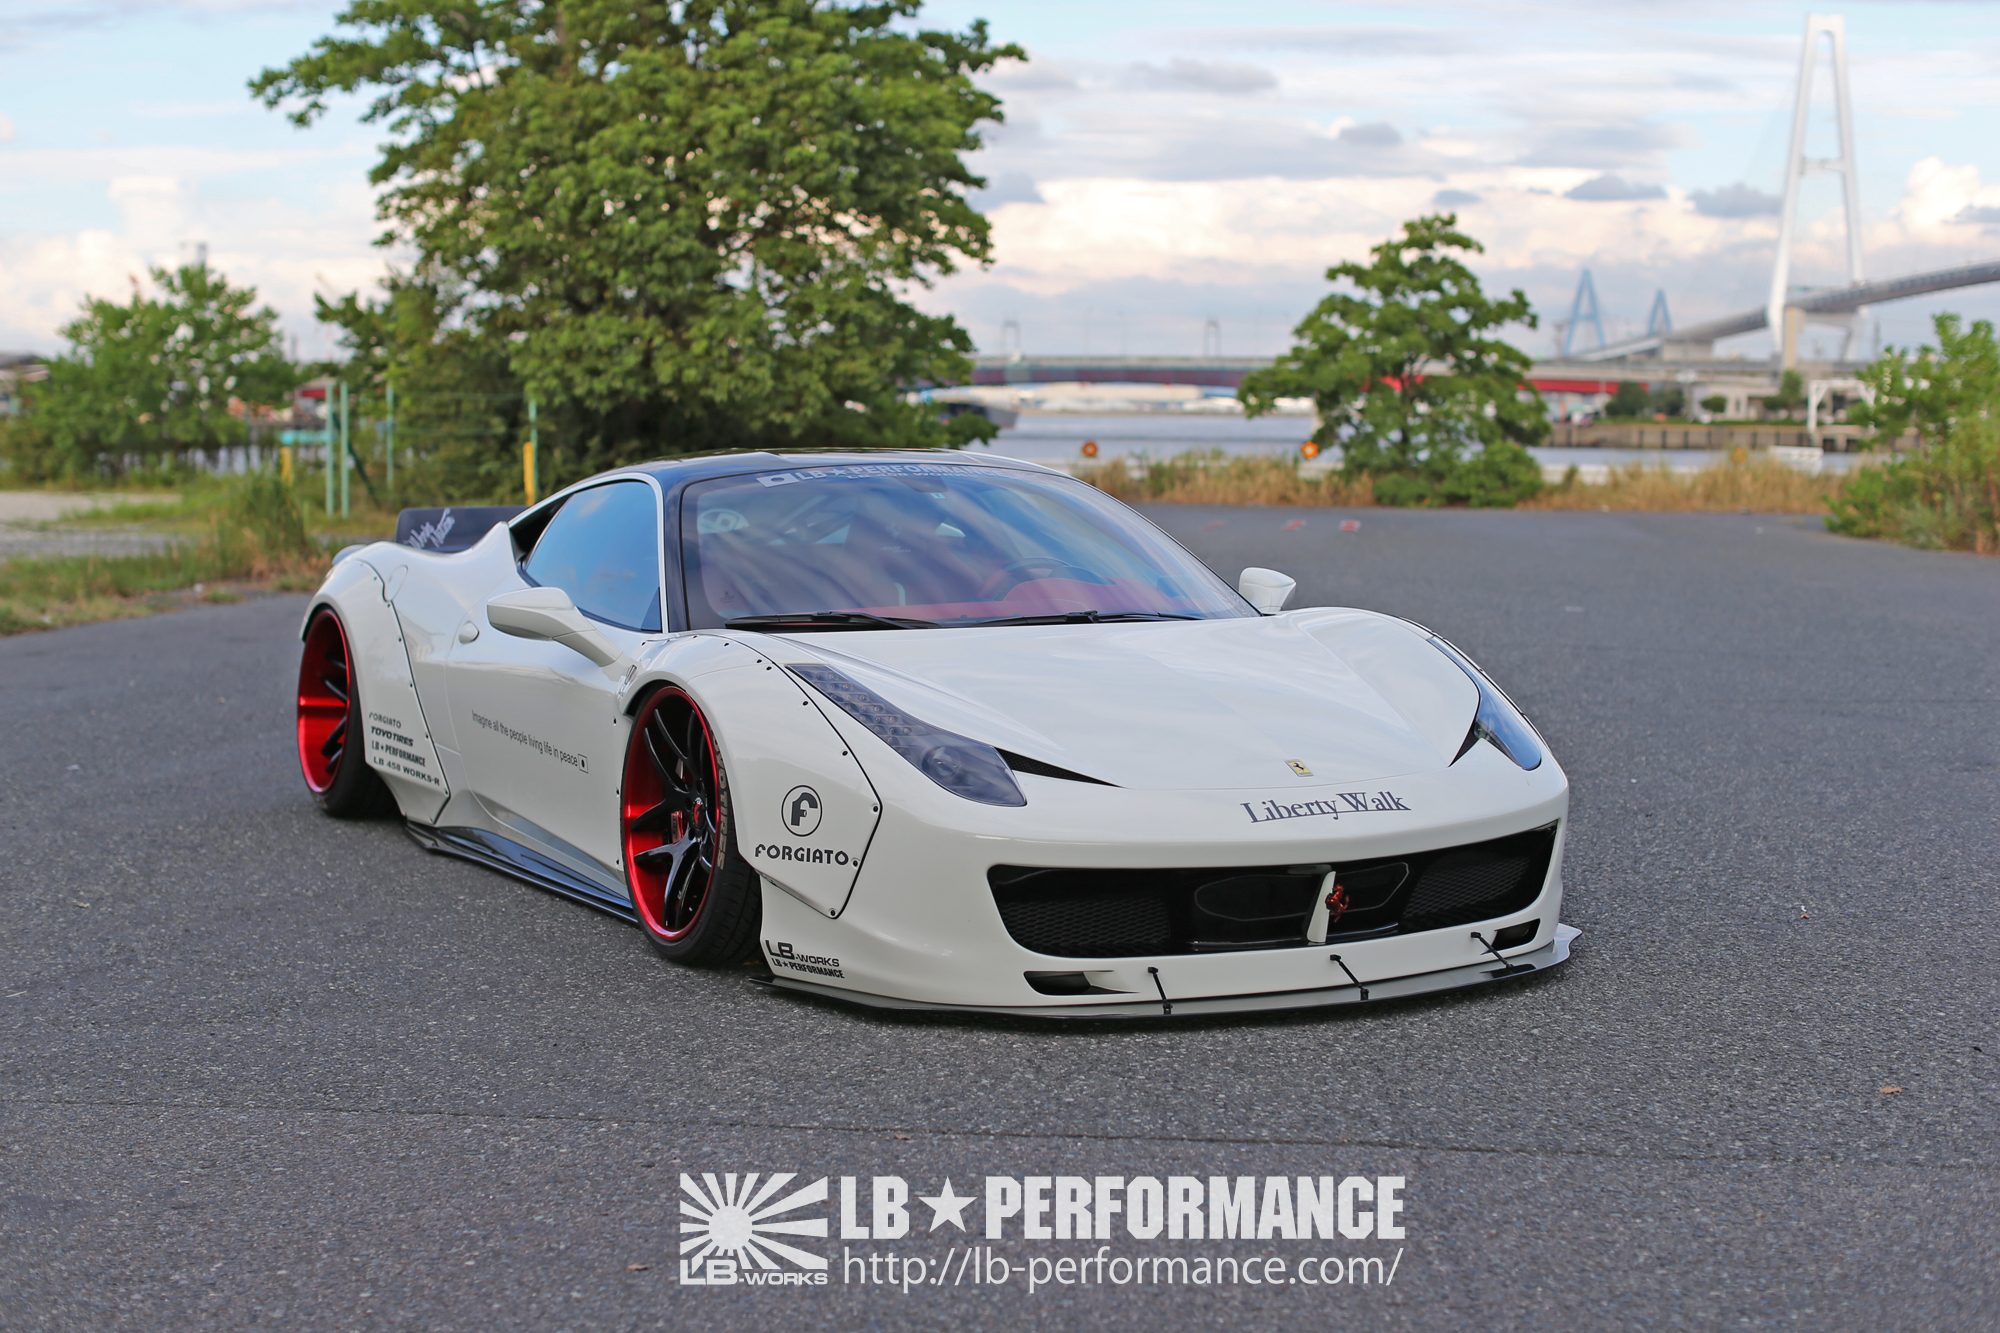 IMG_0923-1 LB-WORKS 458